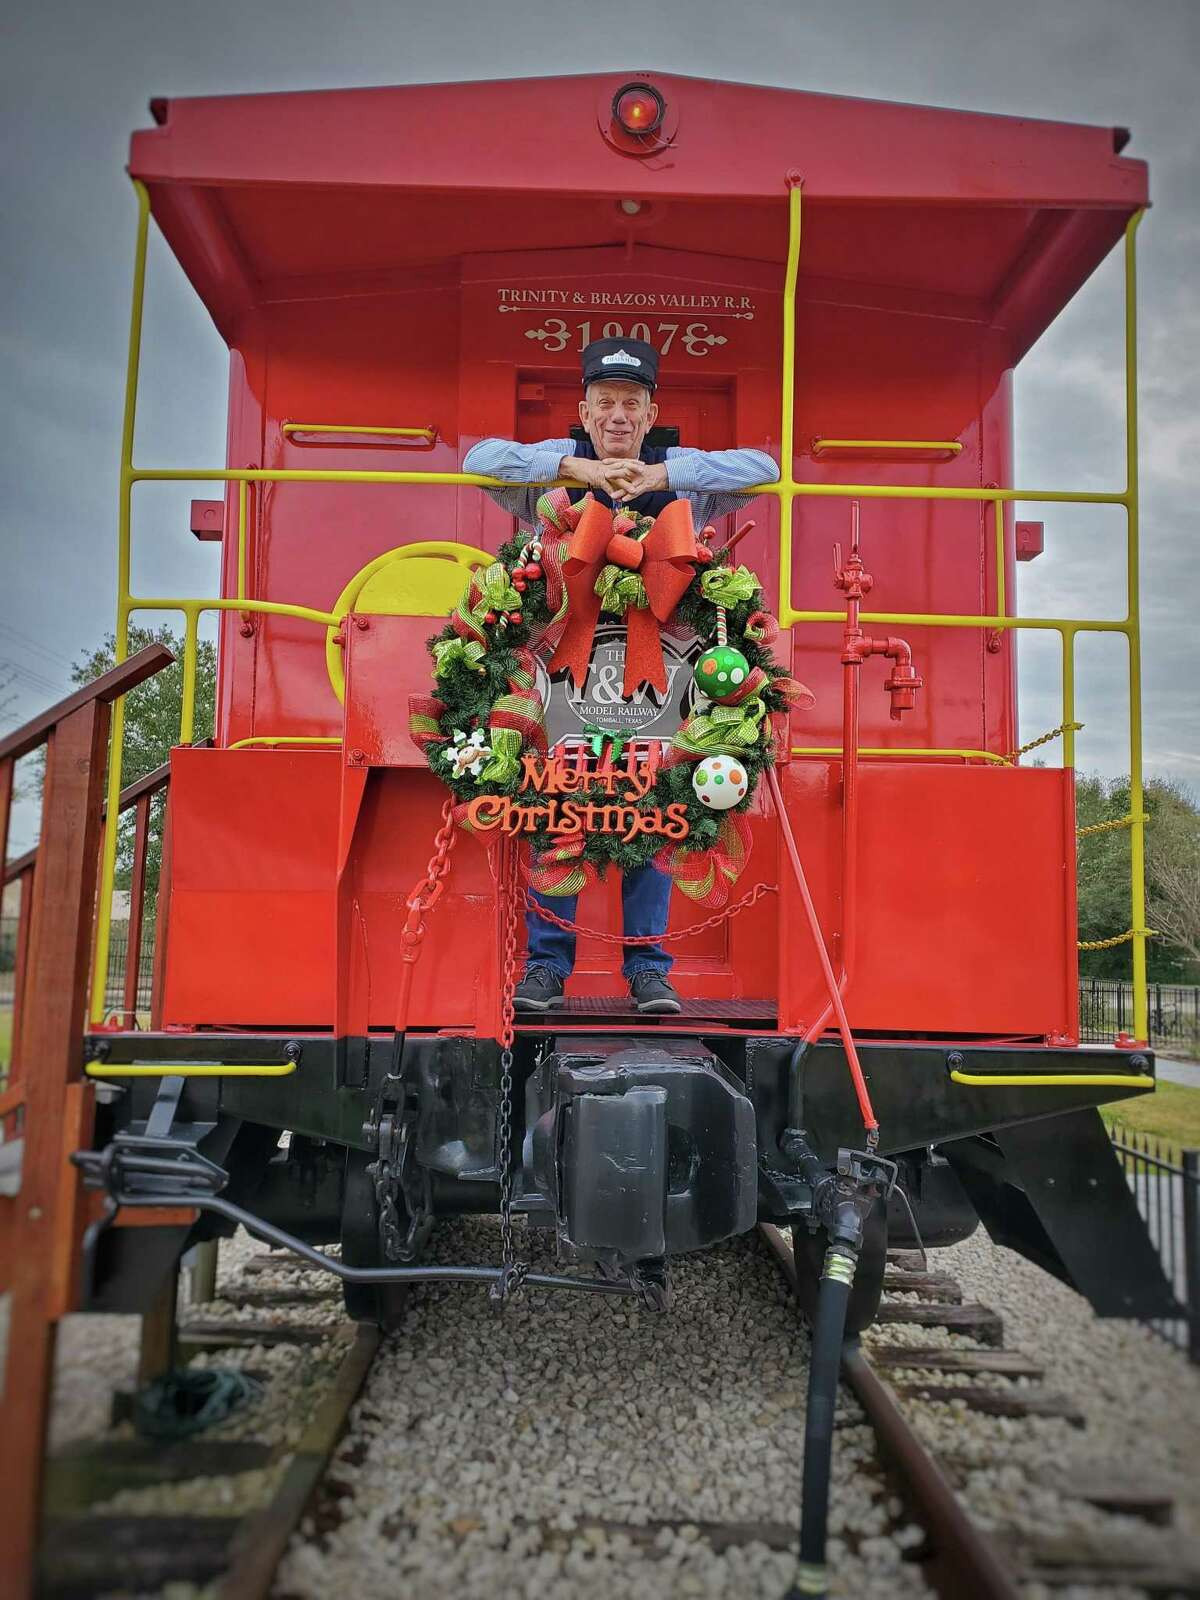 The Tomball Railroad Depot, 201 S. Elm St., is open on Saturdays from 10 a.m. to 2 p.m. for the holiday season.